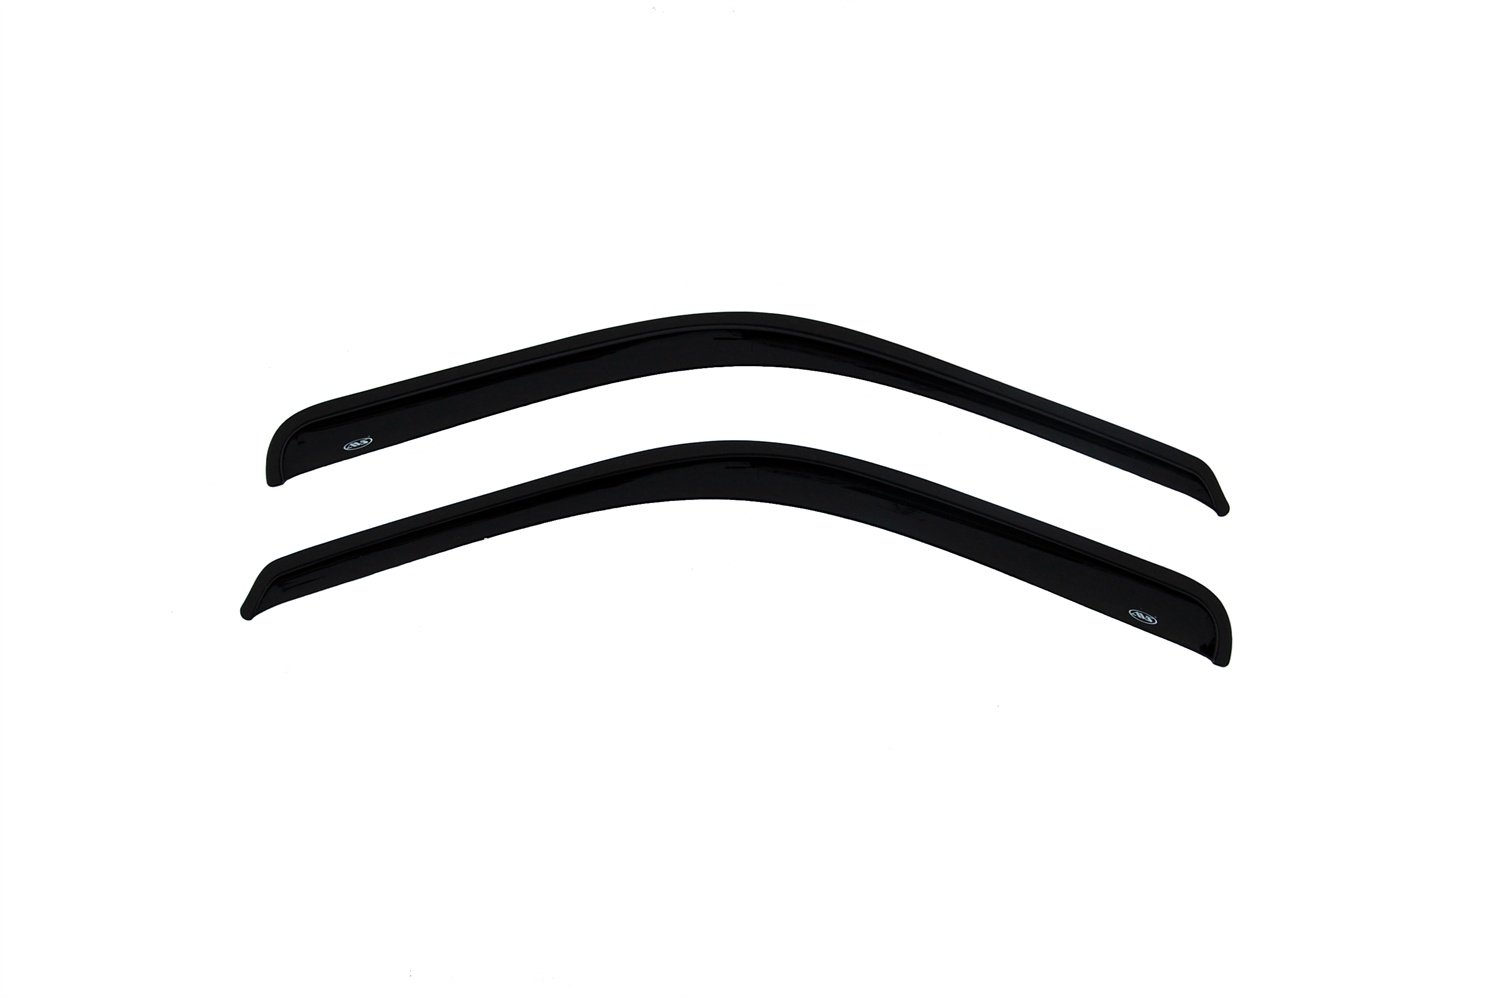 Auto Ventshade 92503 Original Ventvisor Side Window Deflector Dark Smoke, 2-Piece Set for 1999-2016 Ford F-250 to F-750 with Standard Cab by Auto Ventshade